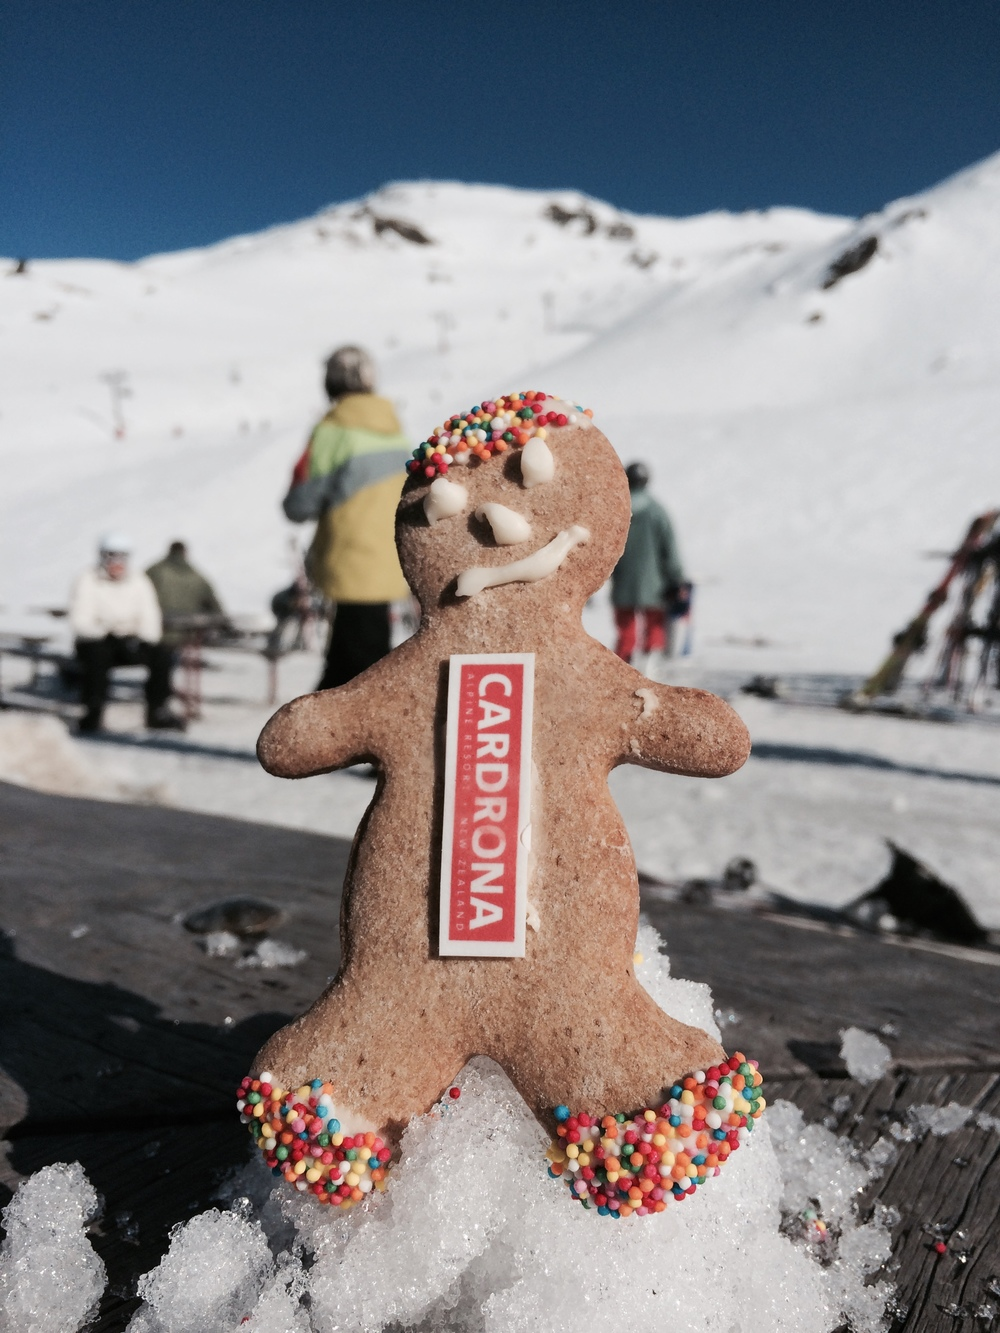 GINGER BREAD MAN @ CADRONA SKI FIELD